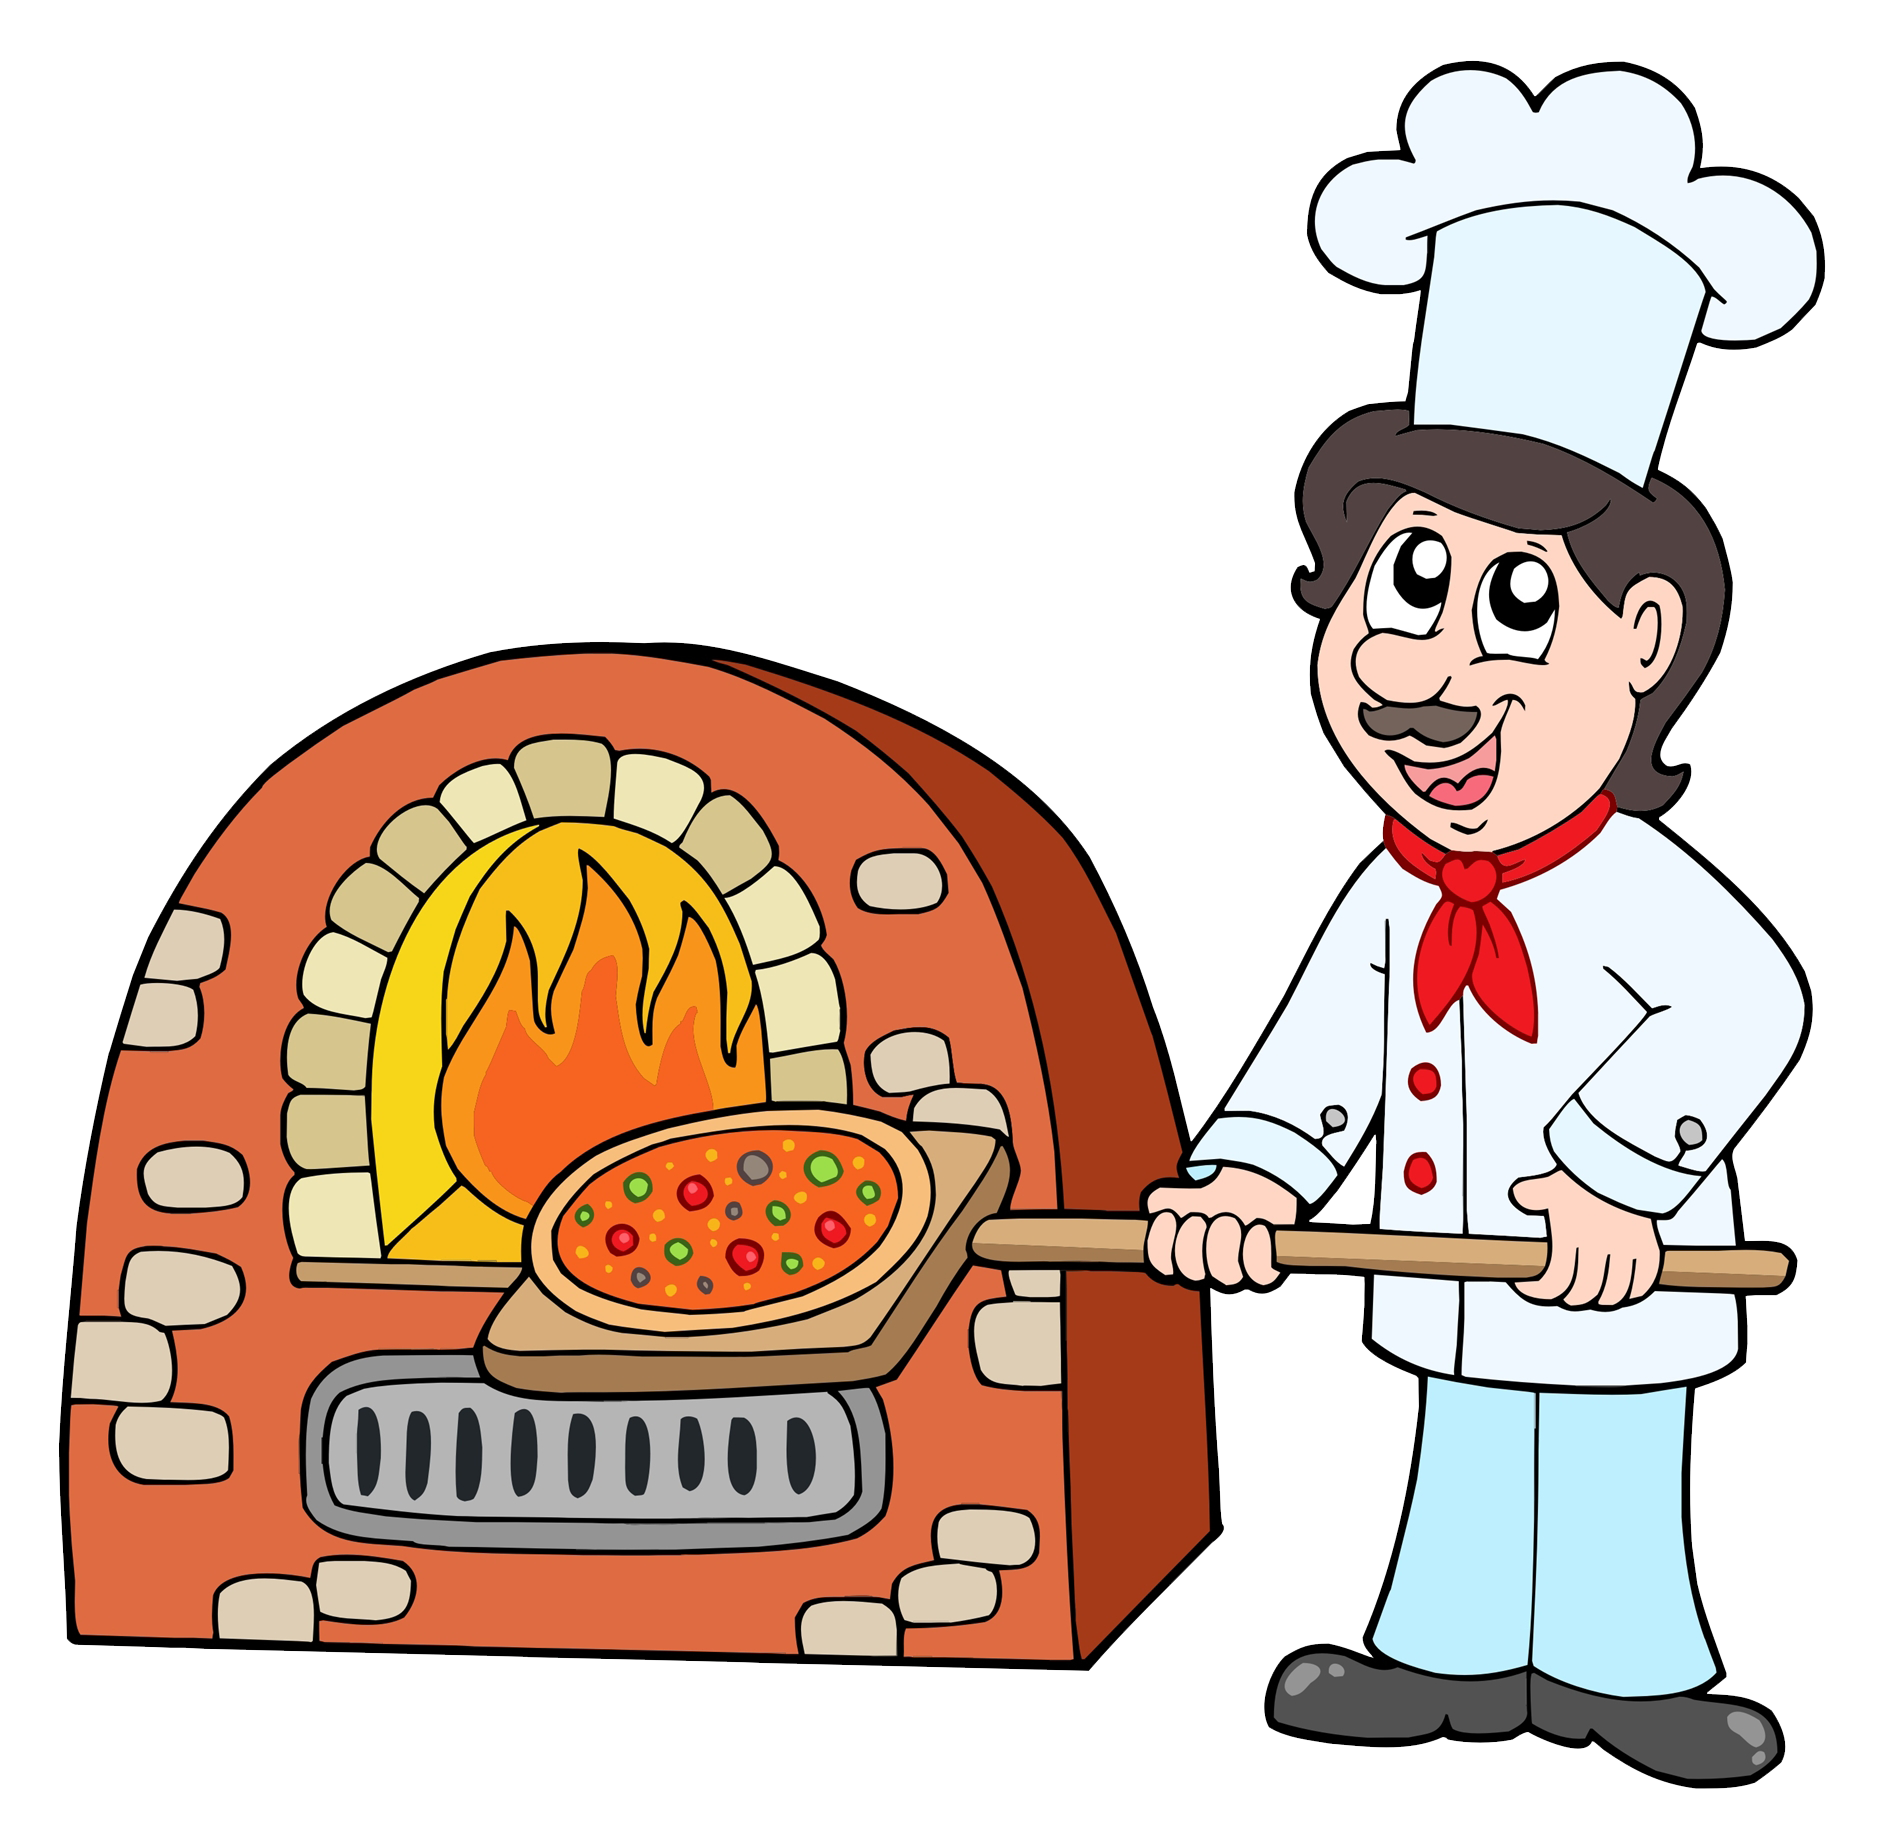 Gas clipart oven fire. Pizza baking chef transprent